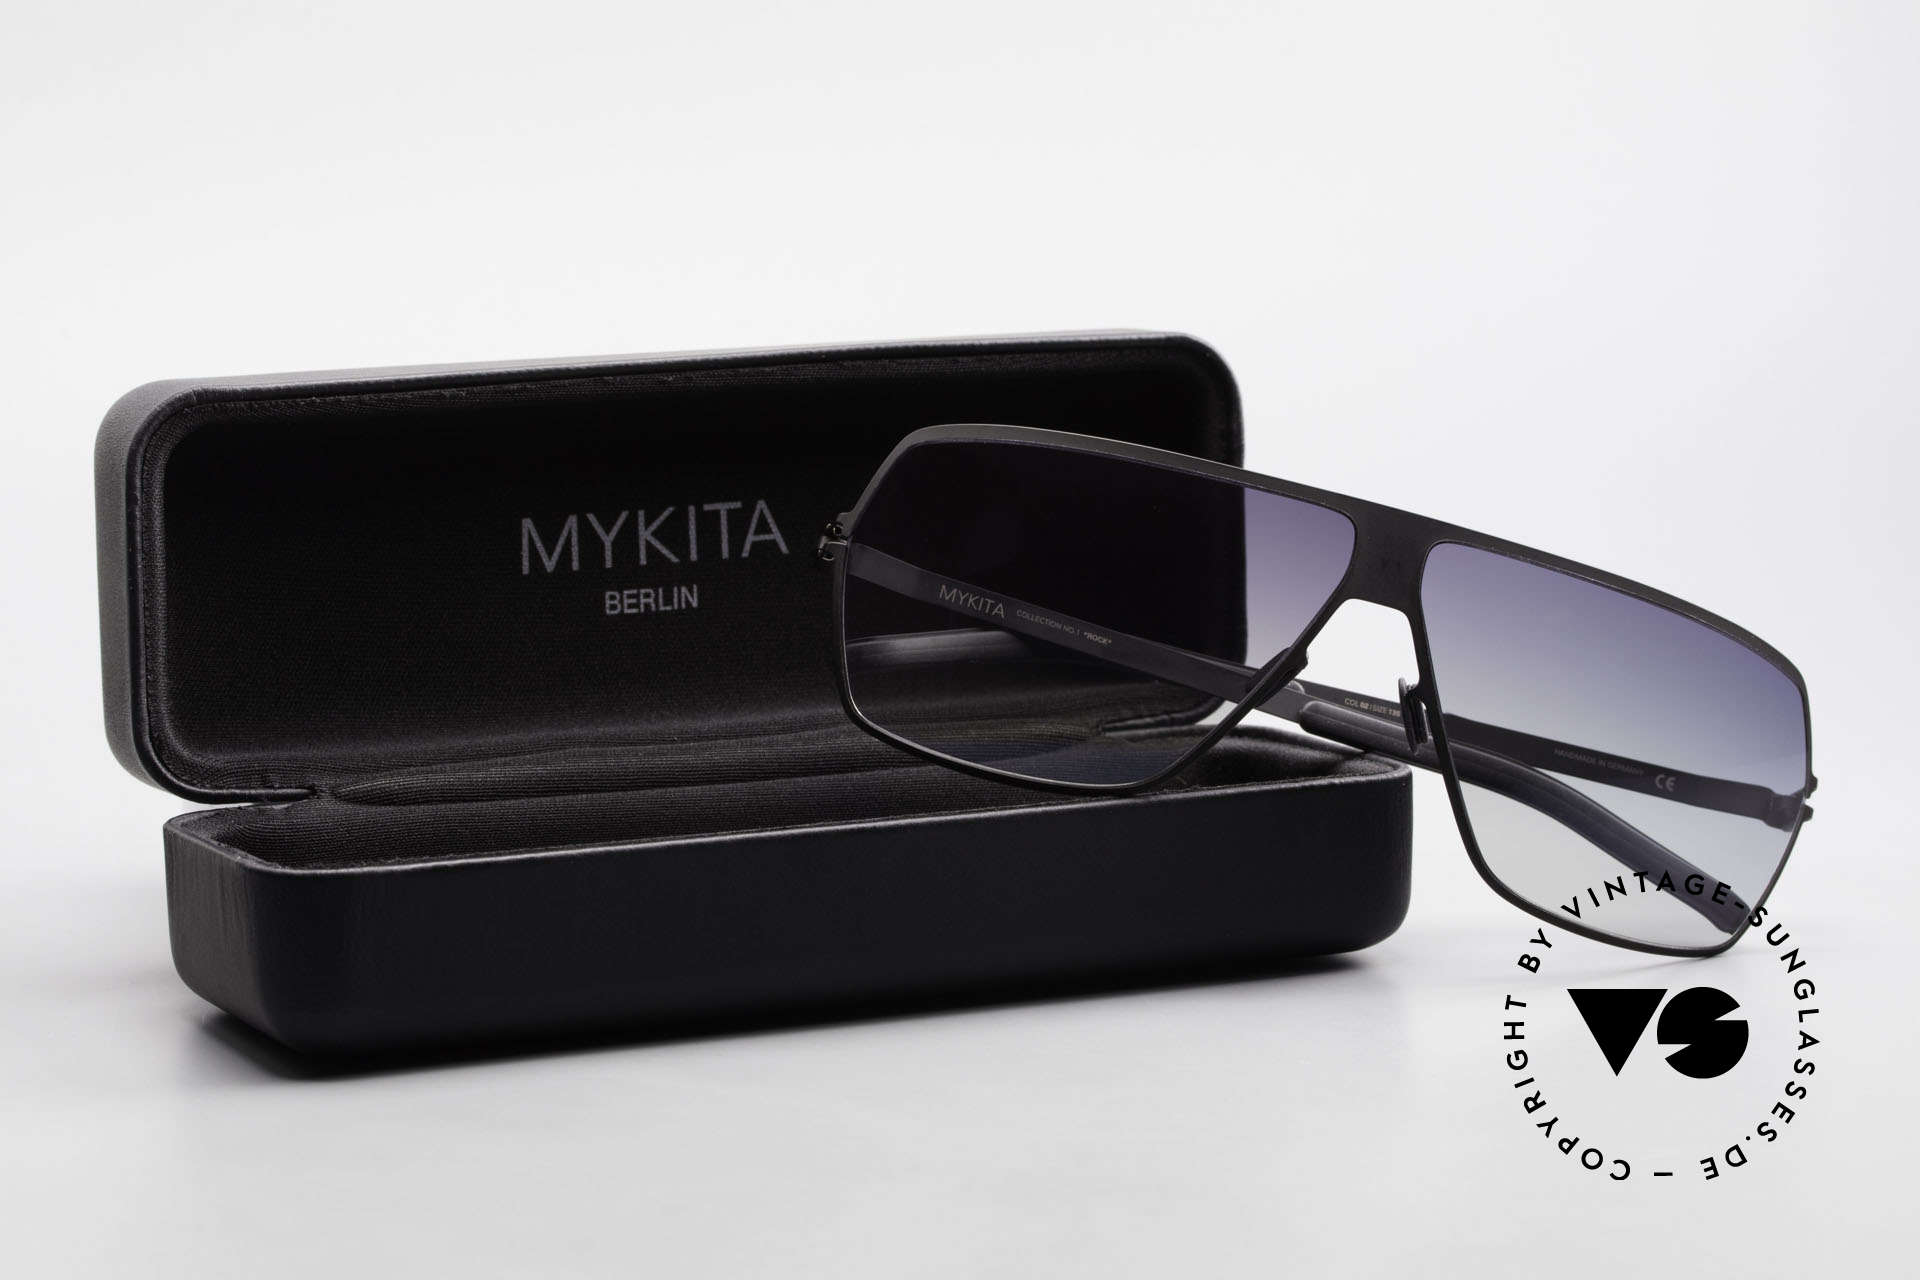 Mykita Rock No1 Men's Sunglasses 2009, Size: large, Made for Men